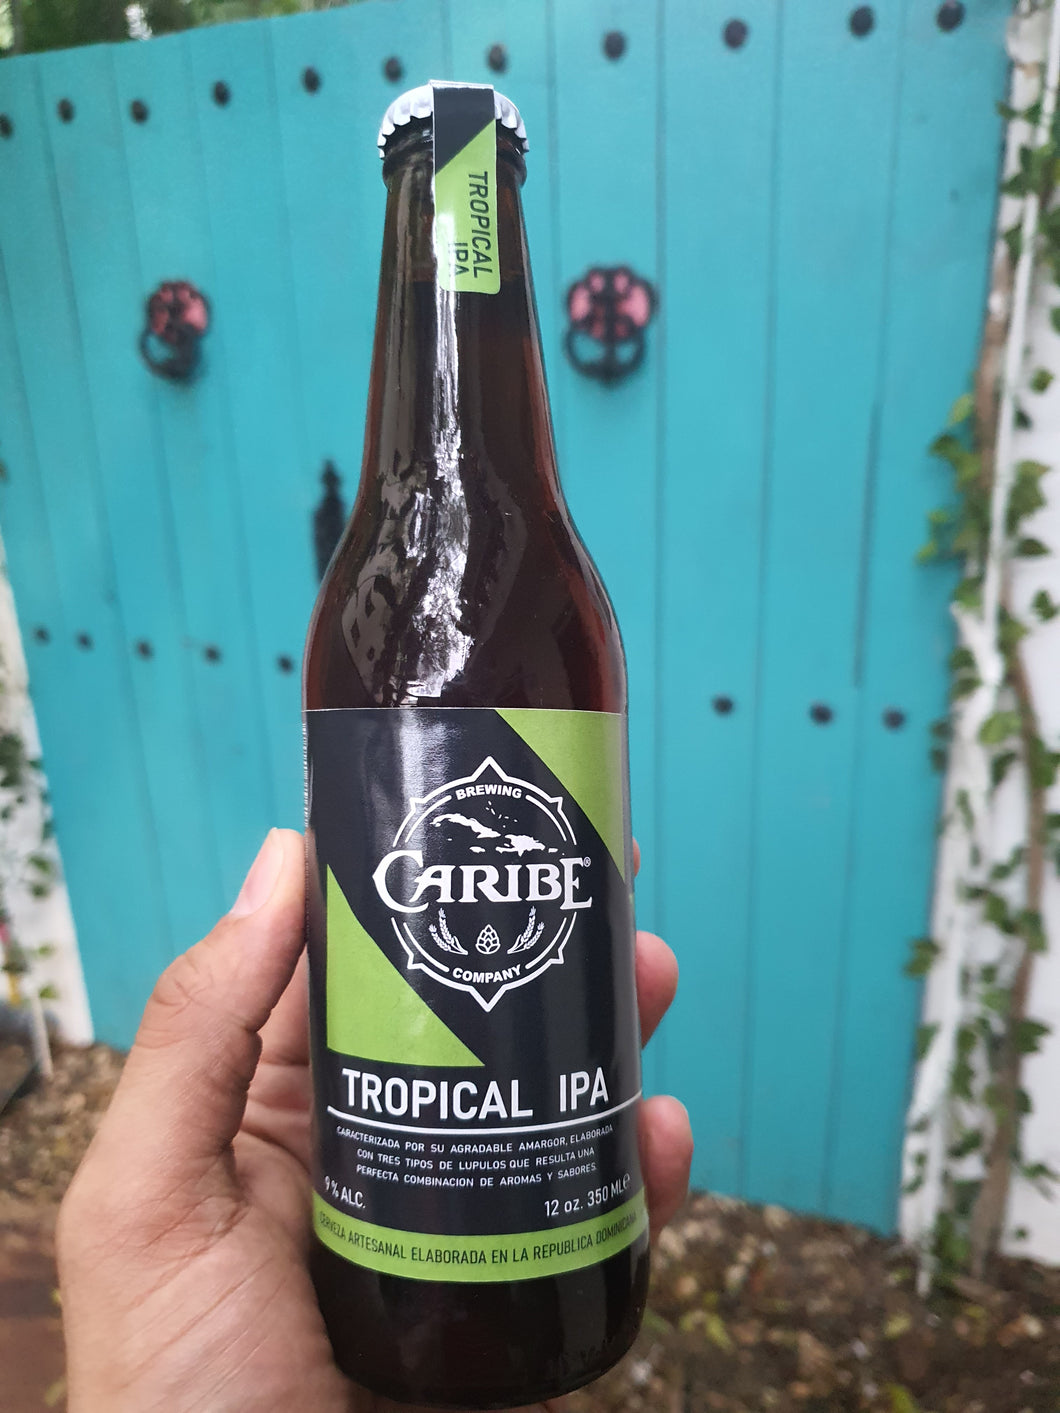 Caribe Brewing Company - Tropical IPA - Cerveza Artesanal - Artesanal.do